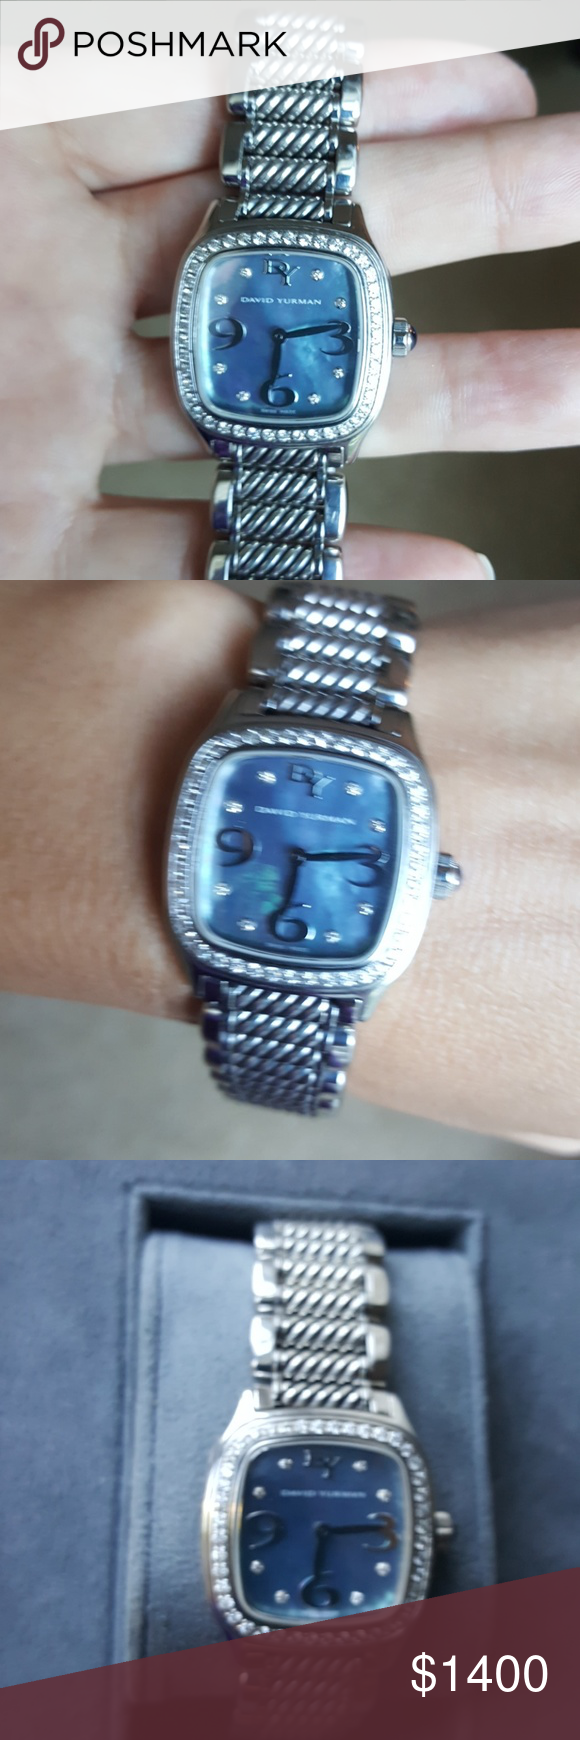 David Yurman diamond bezel  Watch Stunning Thoroughbred diamond bezel blue mother of pearl. This watch has been sized for a small wrist. 2 links have been removed, never found. Fits 7 inch. Beautuful watch in perfect condition. Includes box . Price reflects missing links David Yurman Accessories Watches